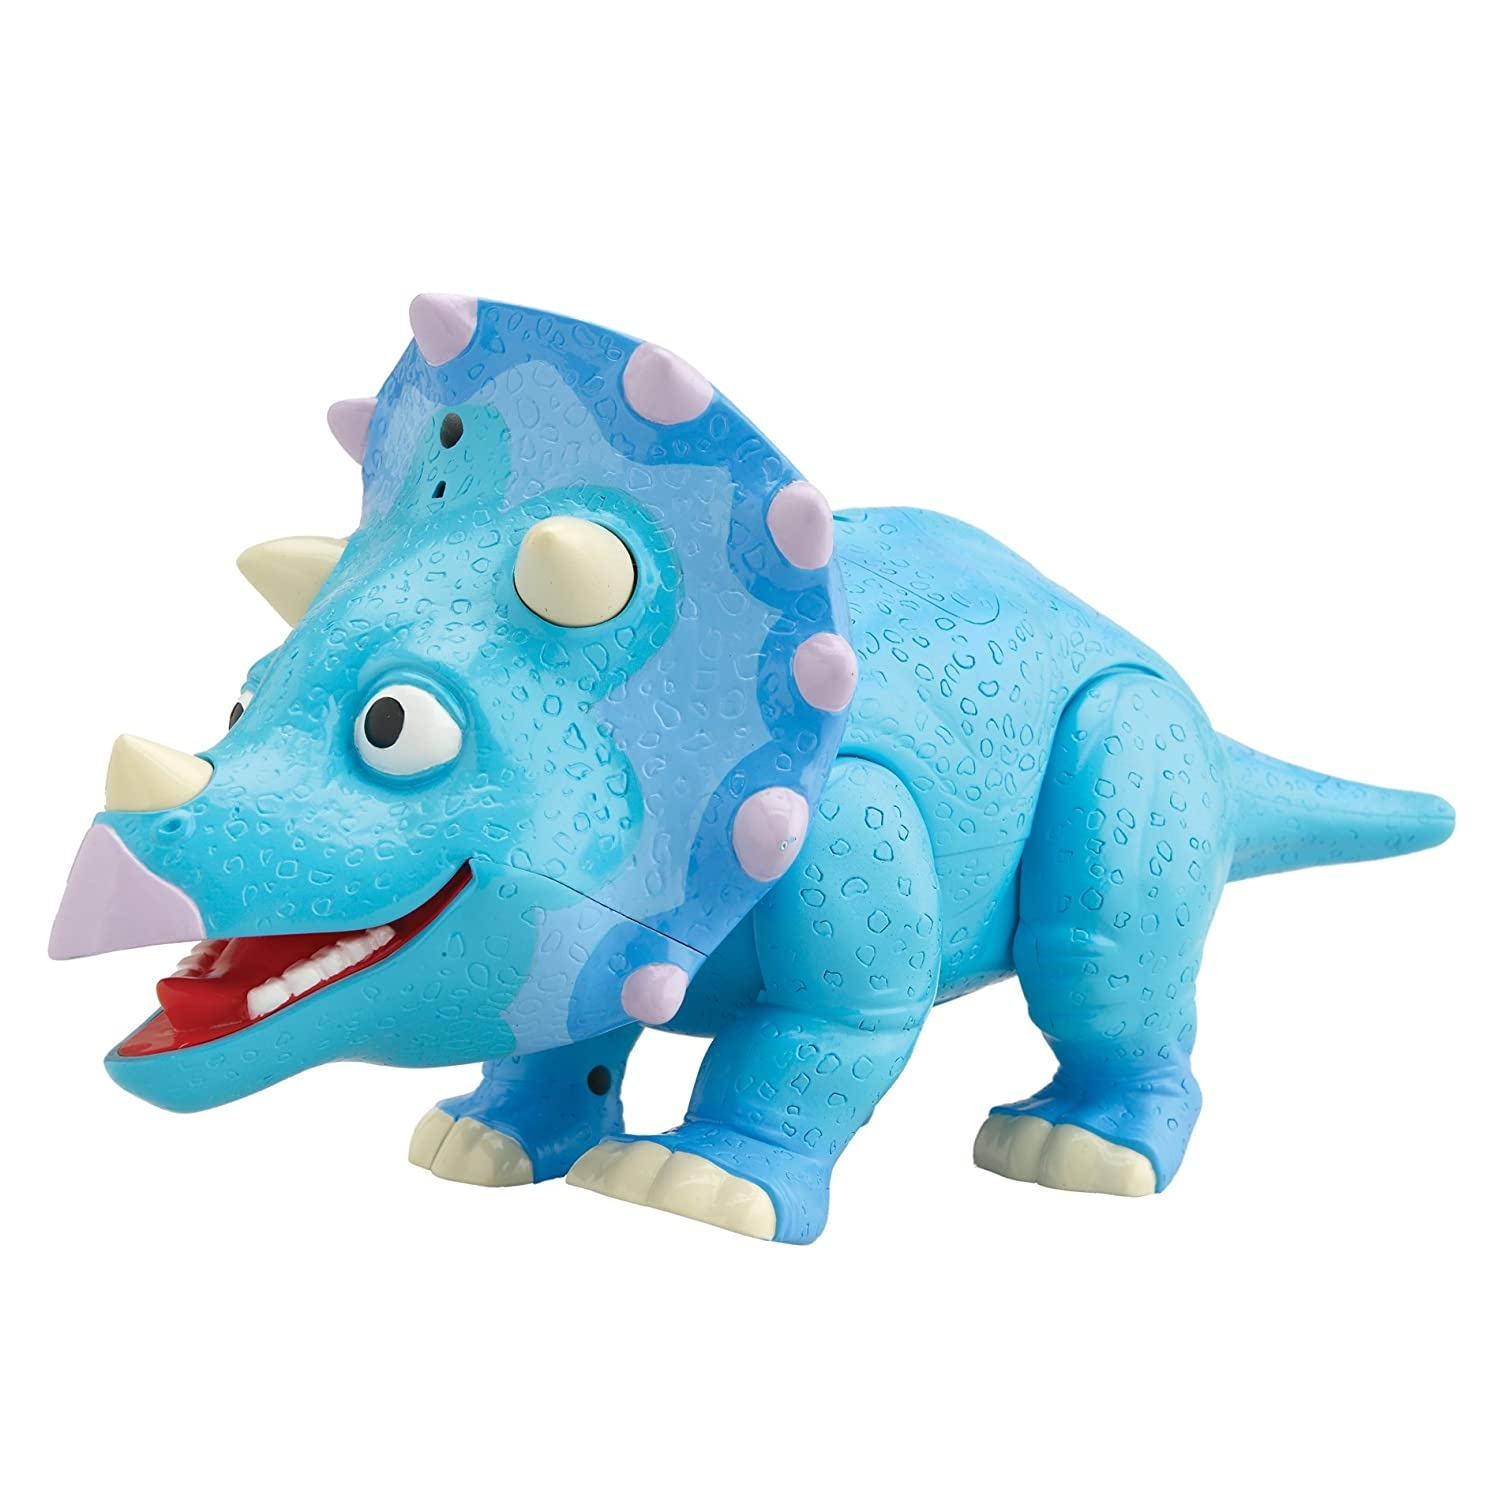 Best Dinosaur Toys for 3 Year Old Boys